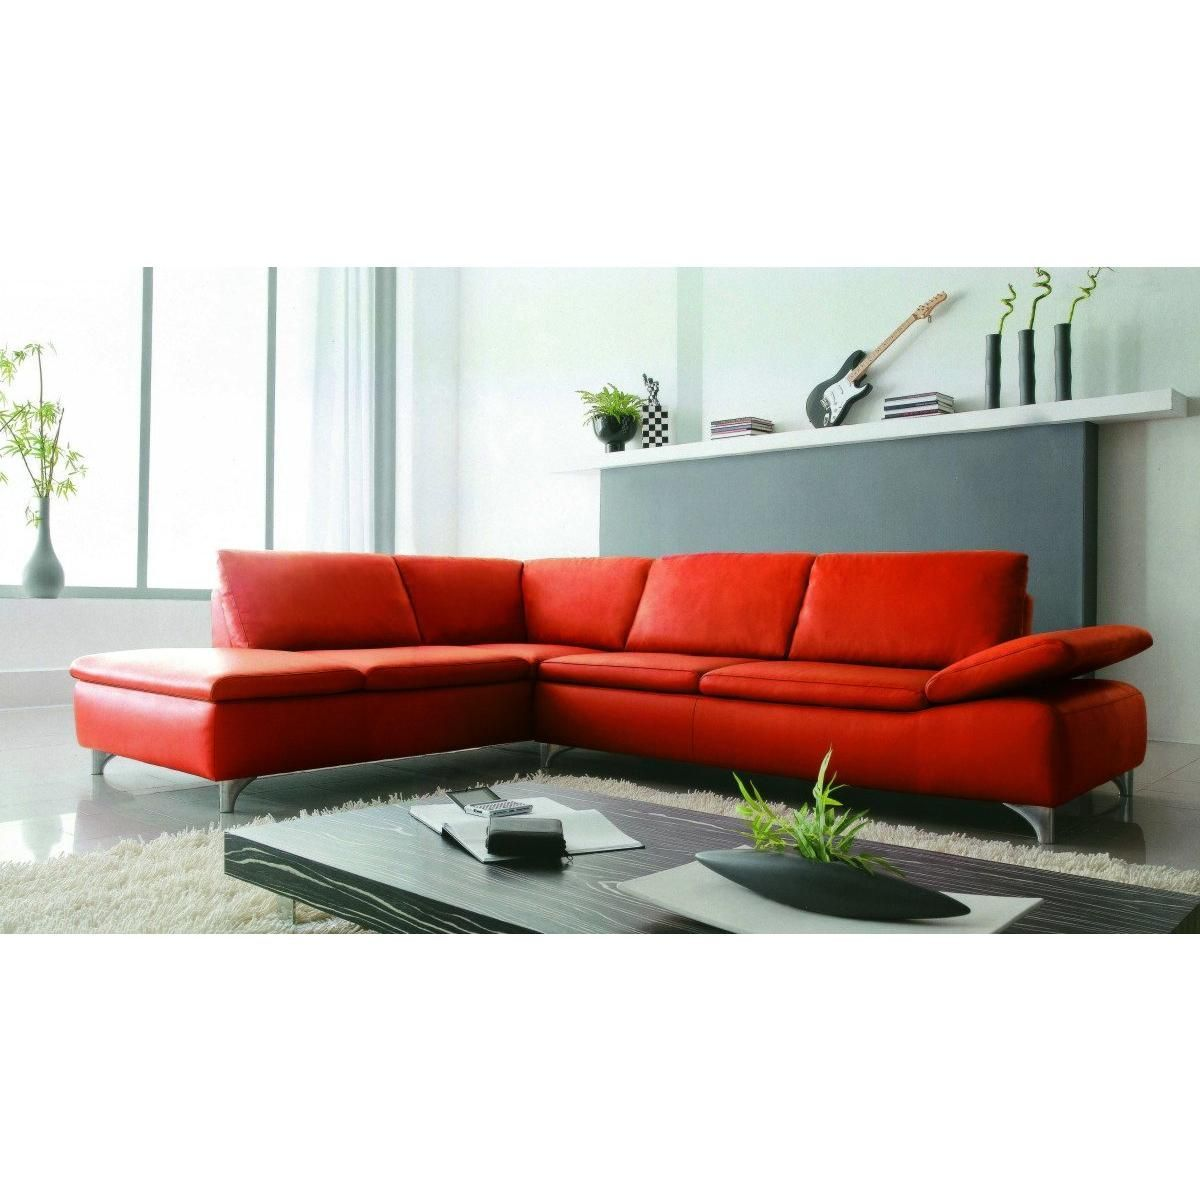 Divani Casa 2915 Modern Bonded Leather Sectional Sofa Leather